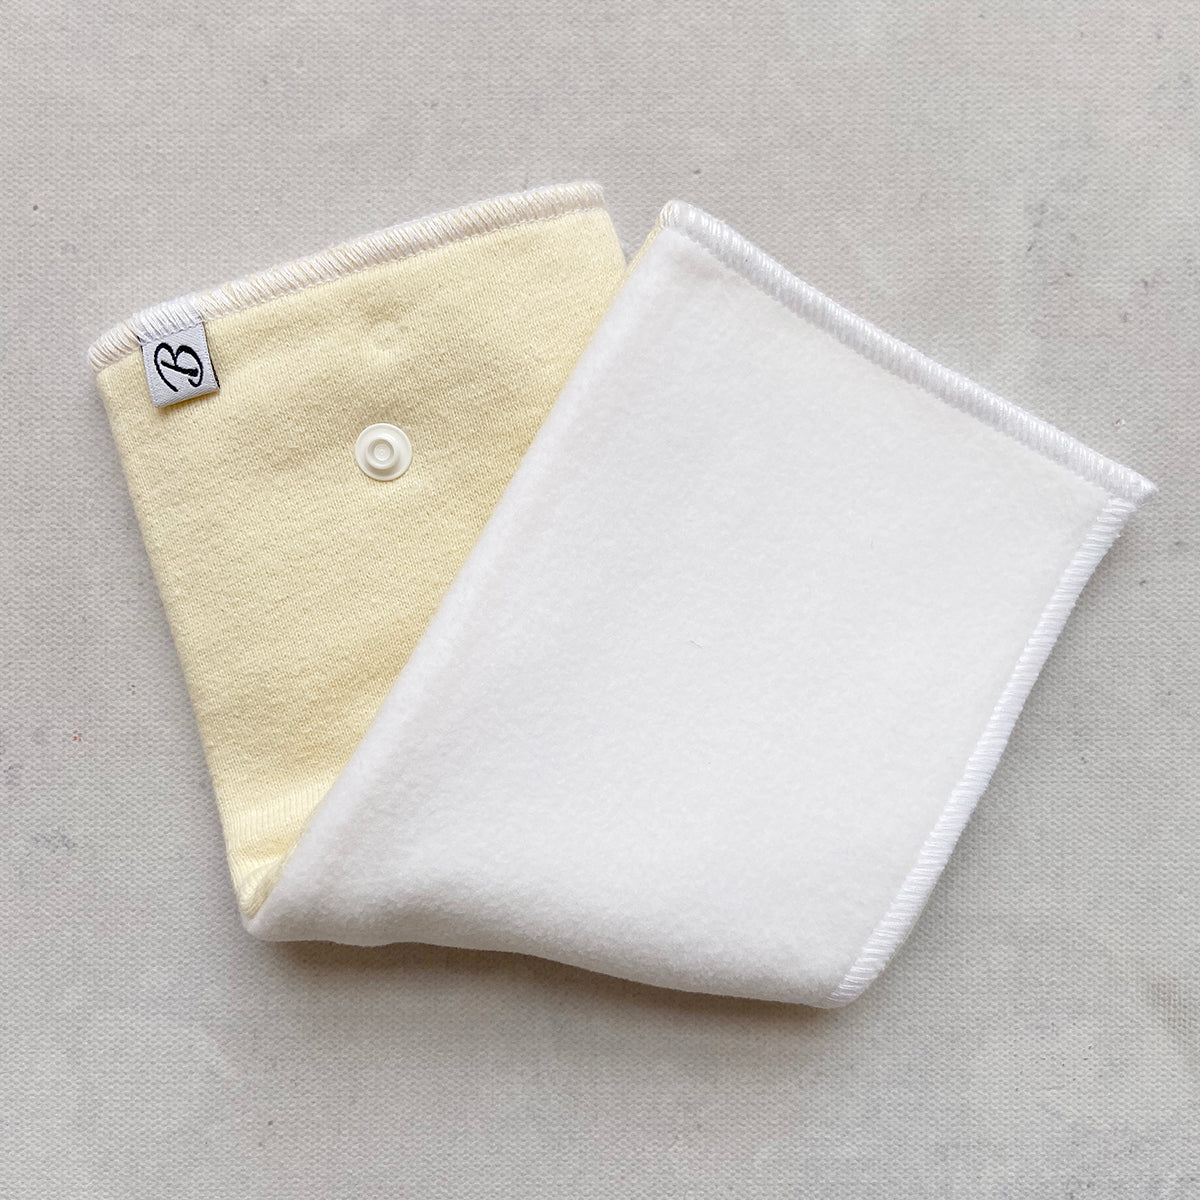 Torana Neo Putani All-in-One Diaper